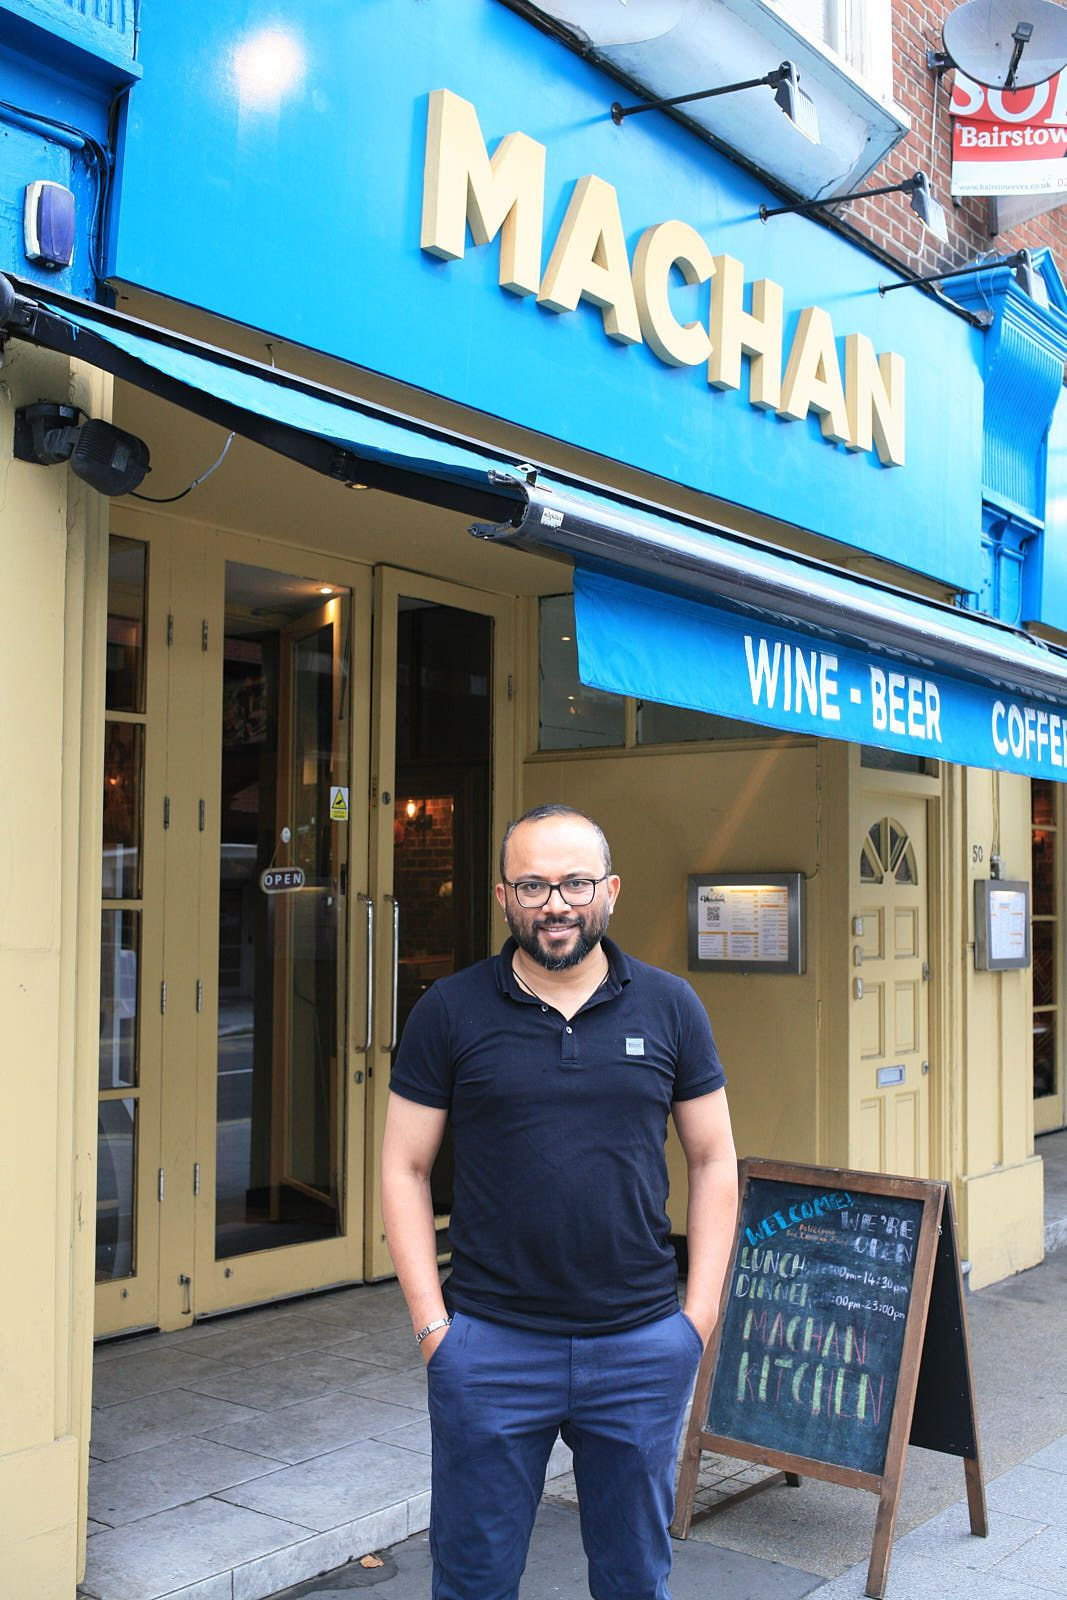 Chef Ratnayaka stands outside his East Croydon restaurant, Machan, which has a large blue frontage with its name in white capital letters.